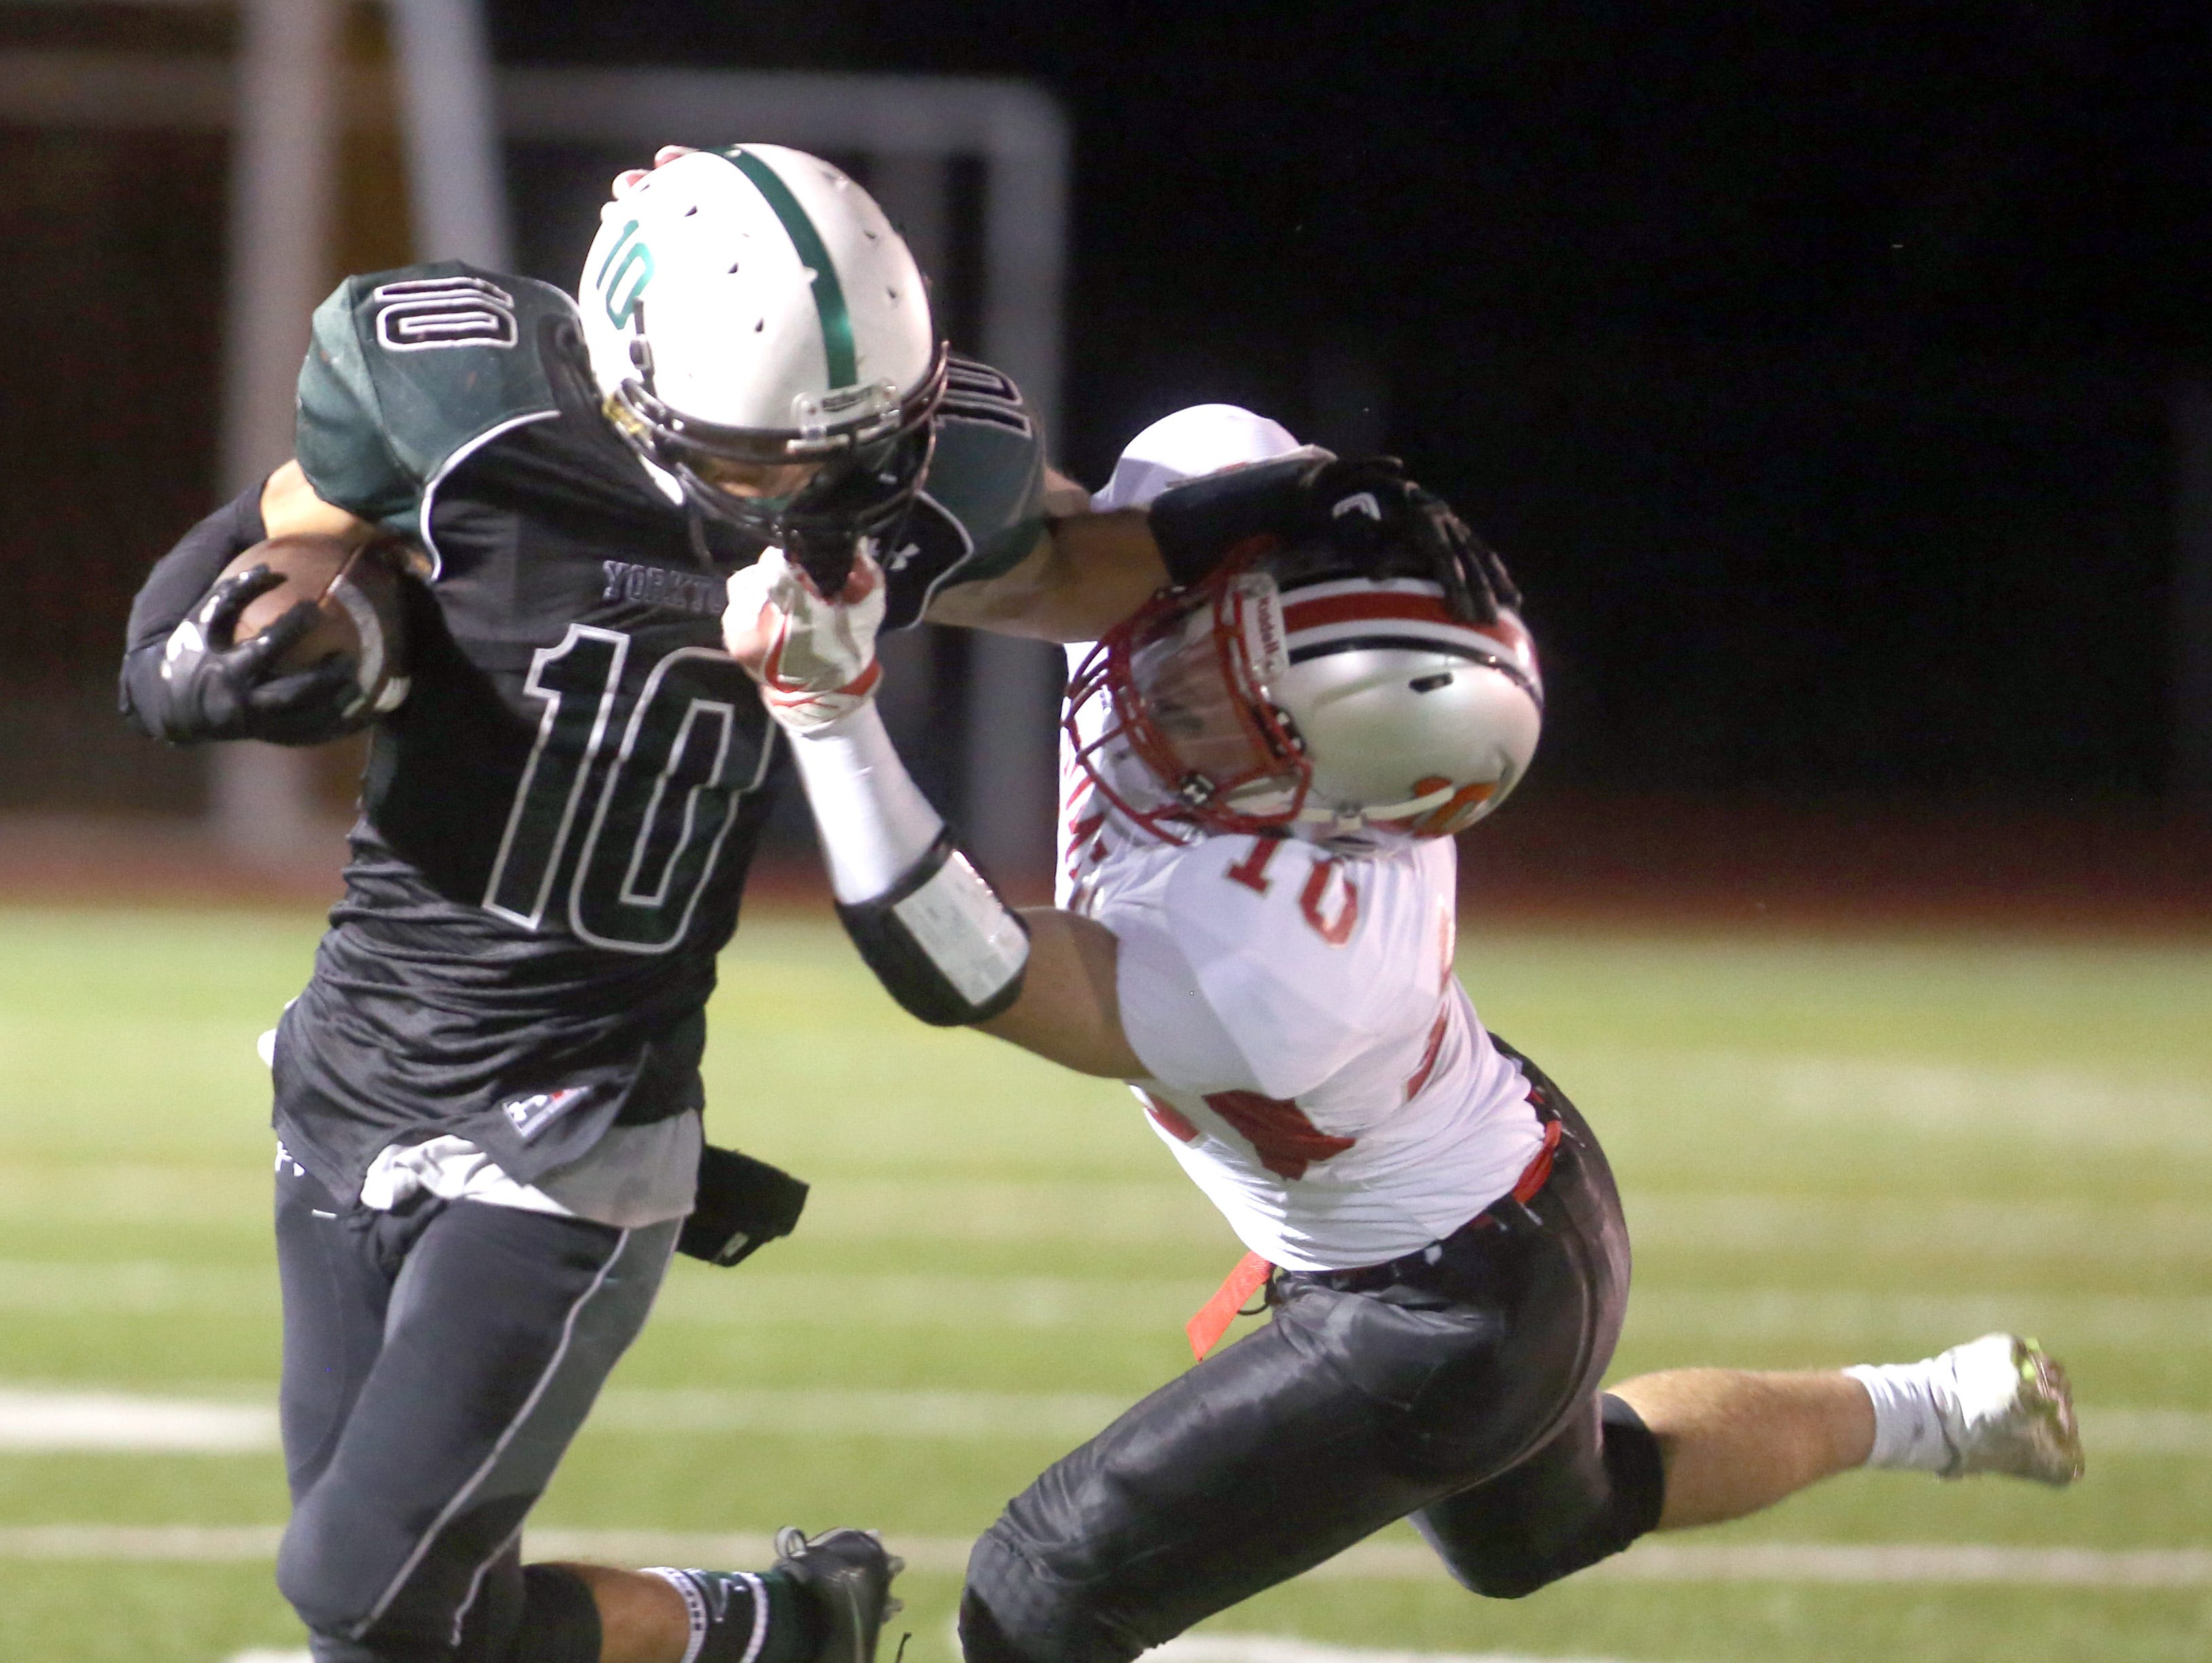 Cameron Pepe of Somers got called for a facemask penalty while trying to bring down Yorktown's Dominick Cioffi during Friday night's game at Yorktown High School.